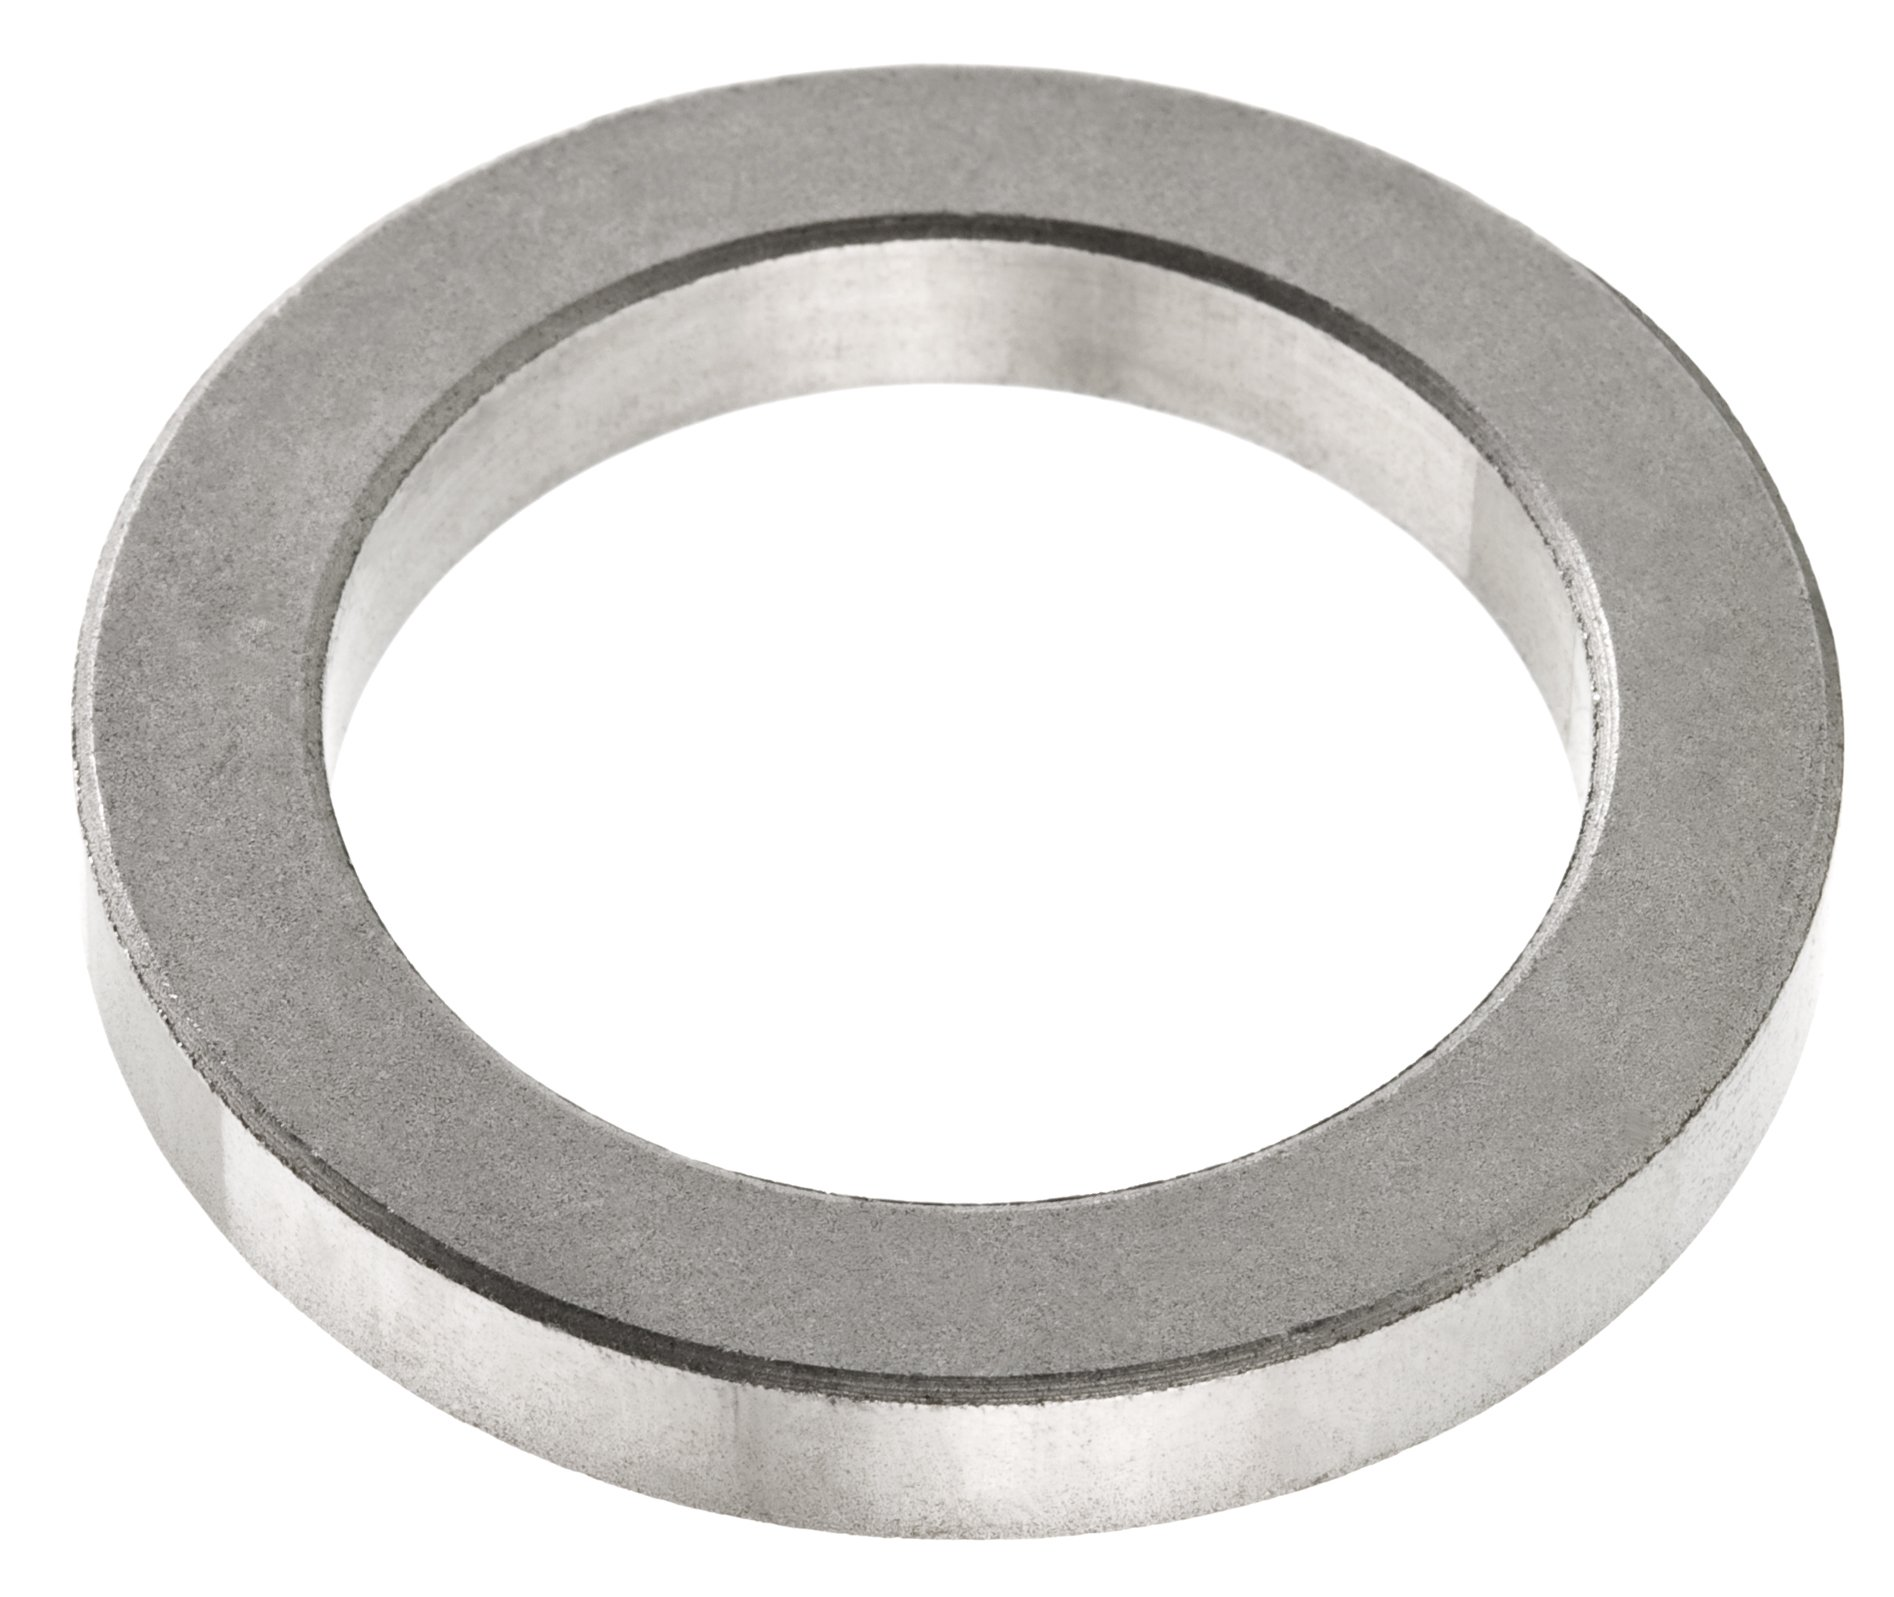 Woodstock W1174 Spacer 1-1/4-by-1-3/4-by-1/4-inch